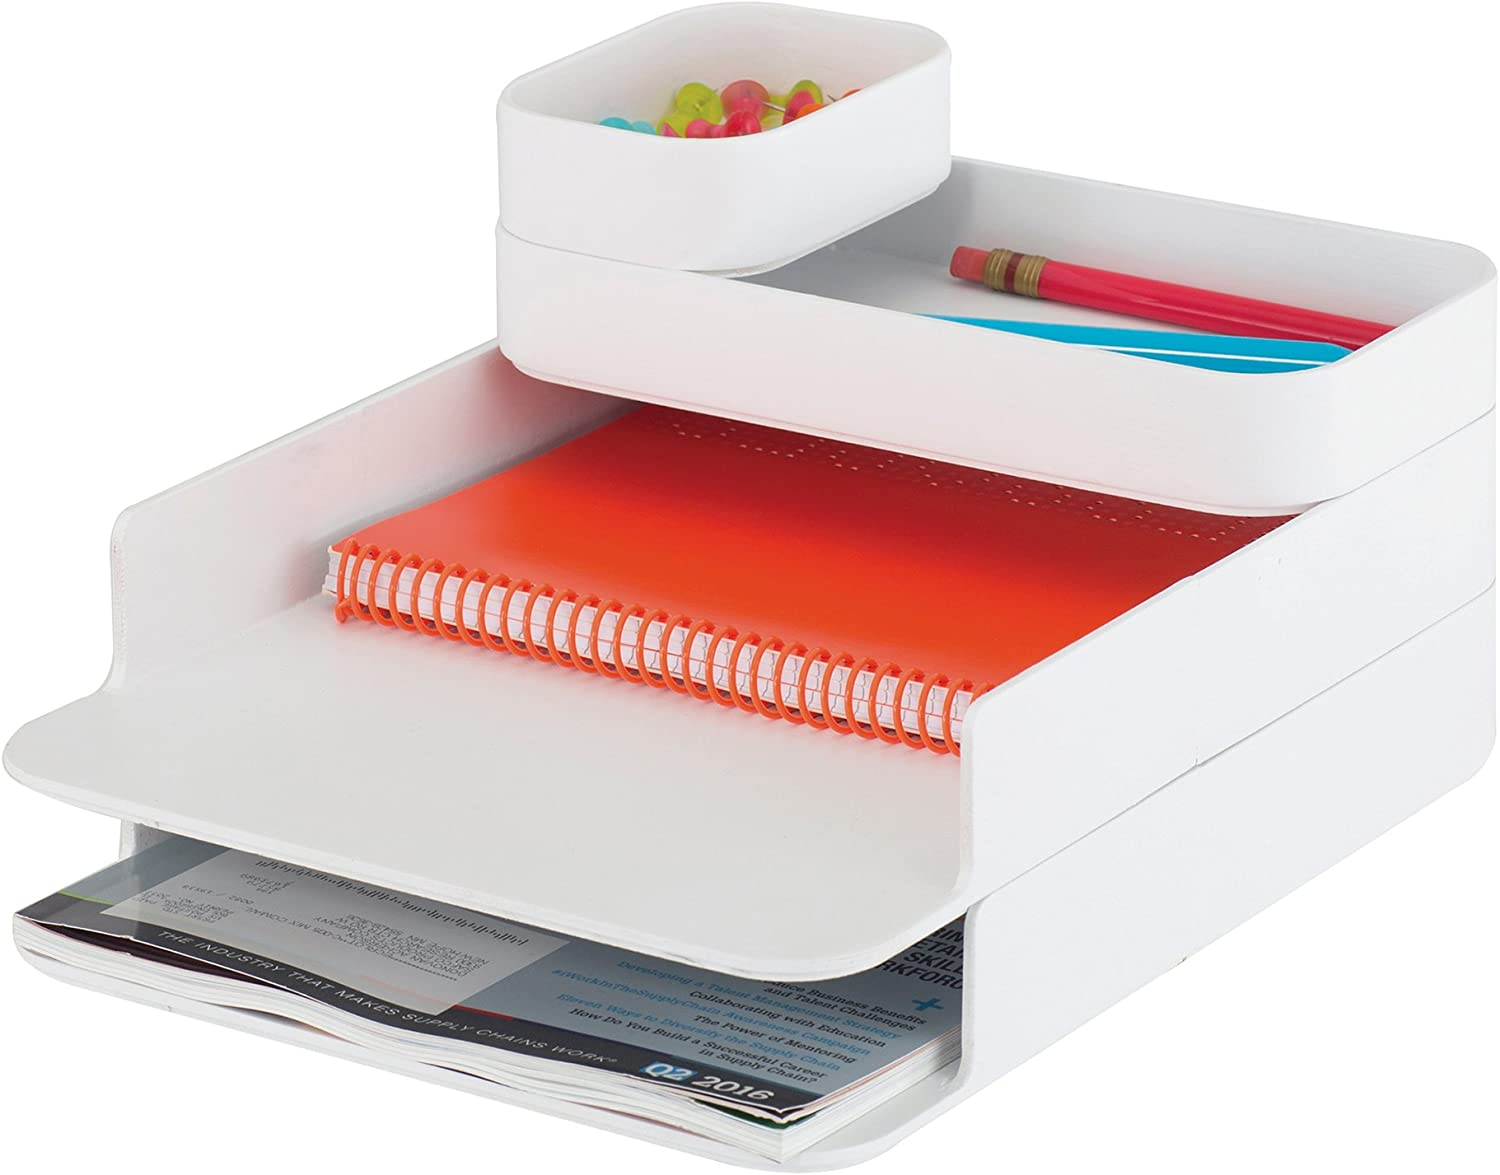 Safco Products 3285WH Max 62% OFF Stacking Plastic Ranking TOP2 Desktop White Set Sorter